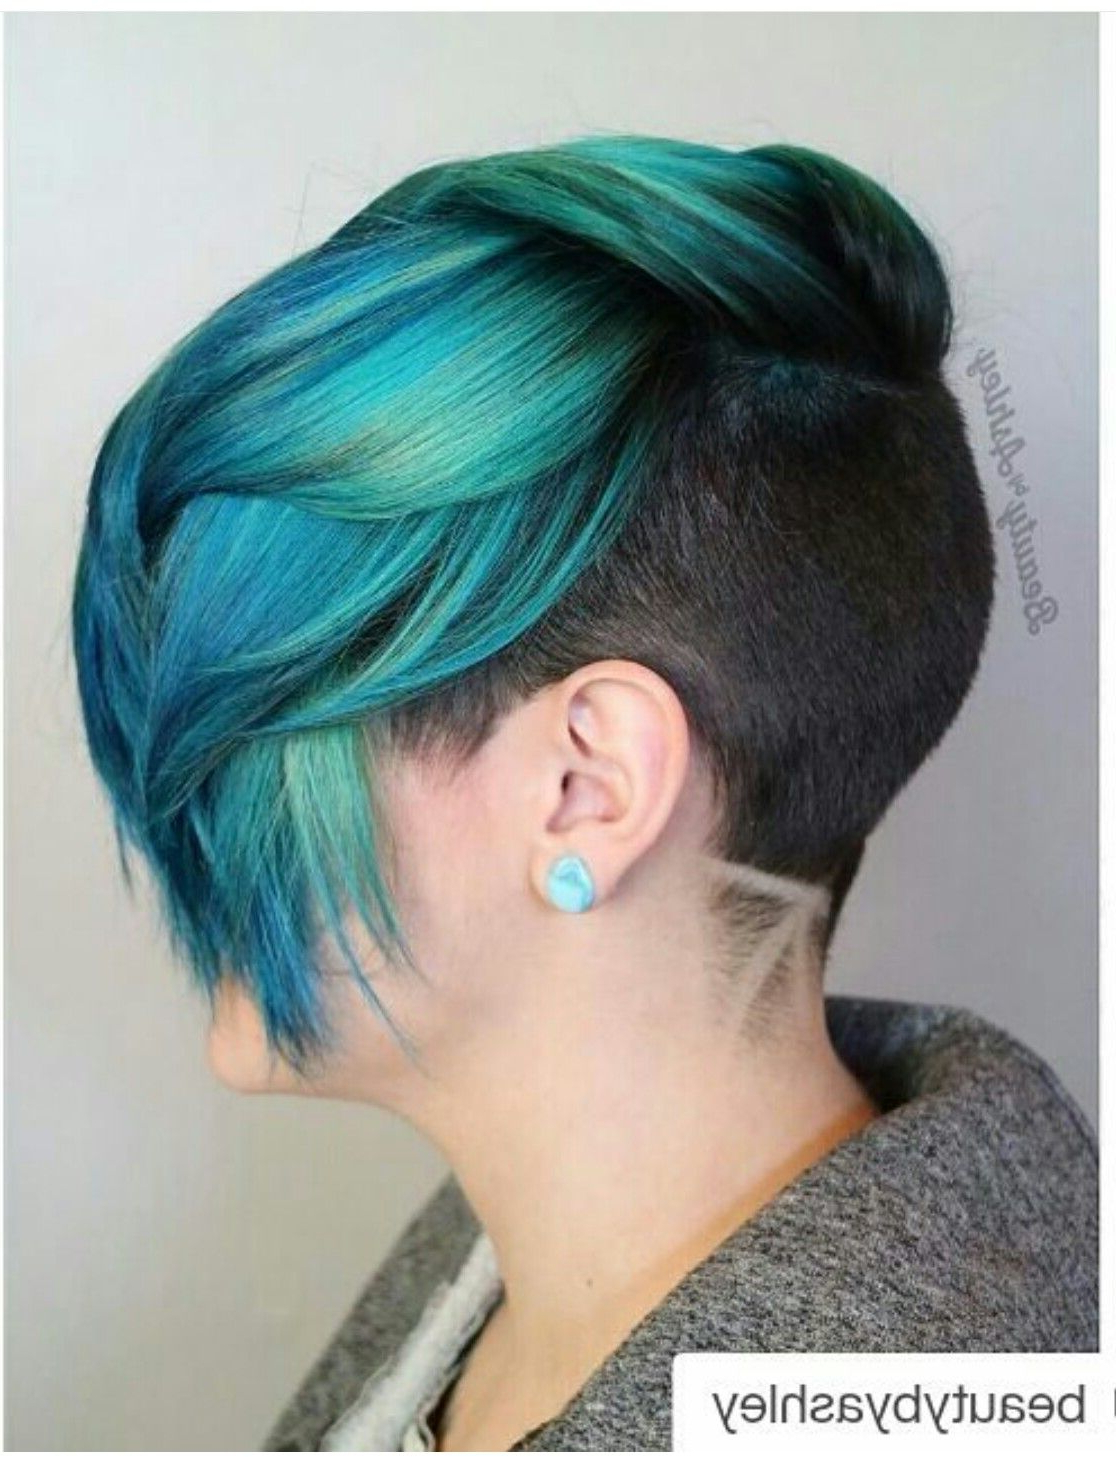 Find Out Full Gallery Of Unique Short Hairstyles Women Shaved Sides Inside Short Hairstyles One Side Shaved (View 7 of 25)